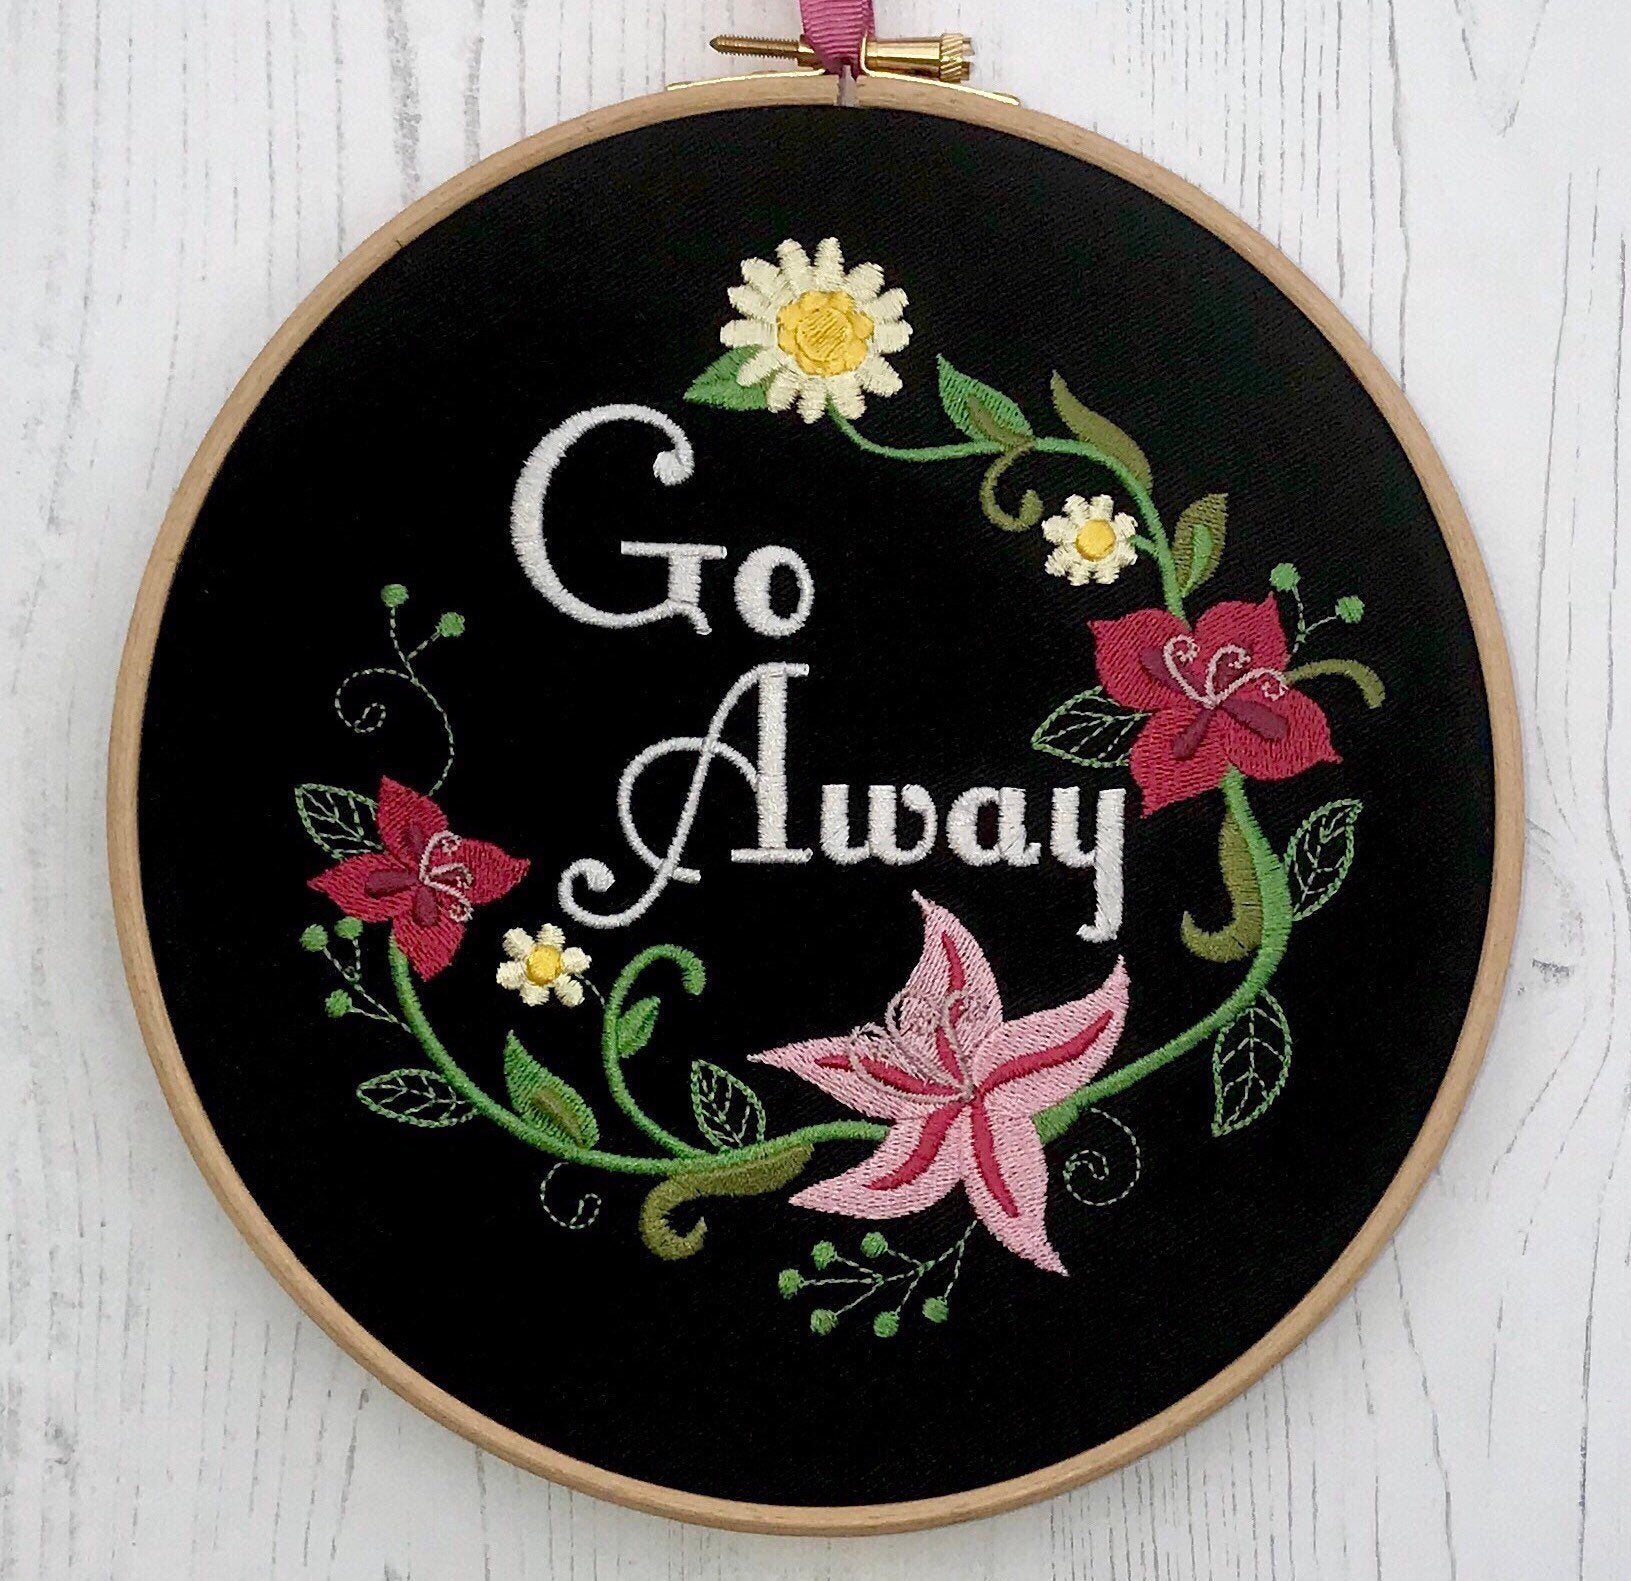 Go away, floral wreath, Embroidery hoop art